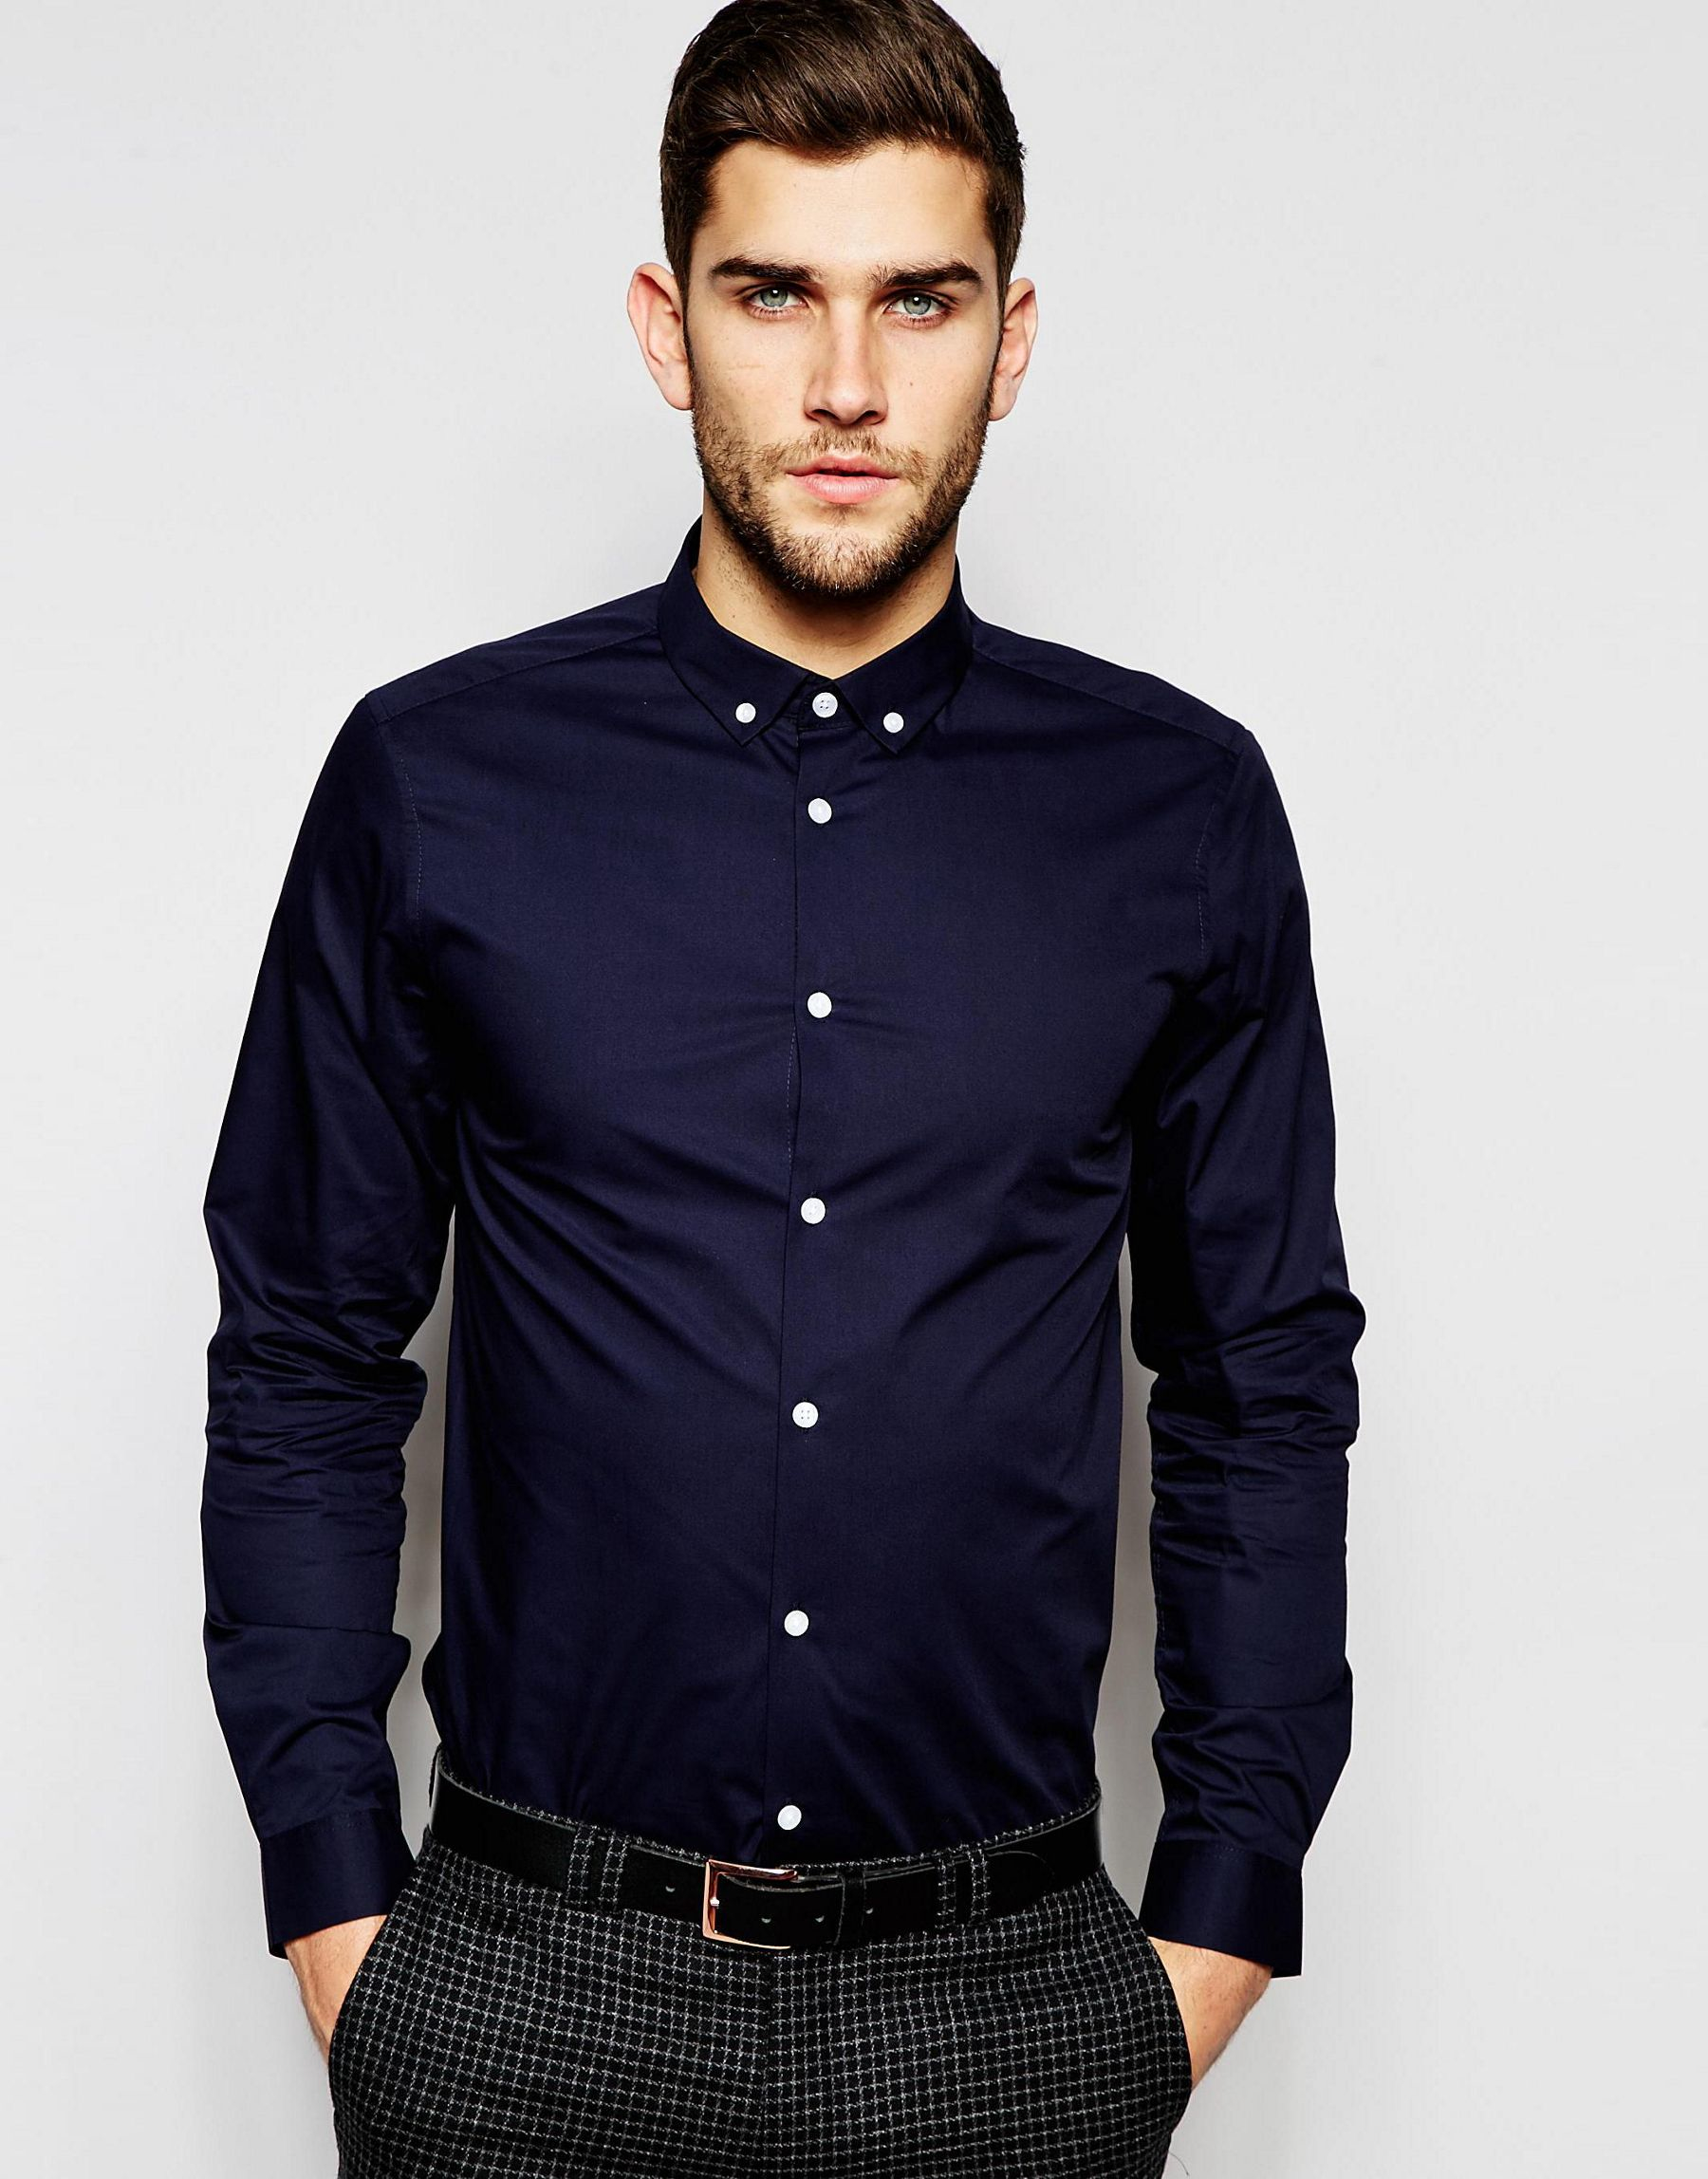 Asos Navy Shirt With Button Down Collar In Regular Fit